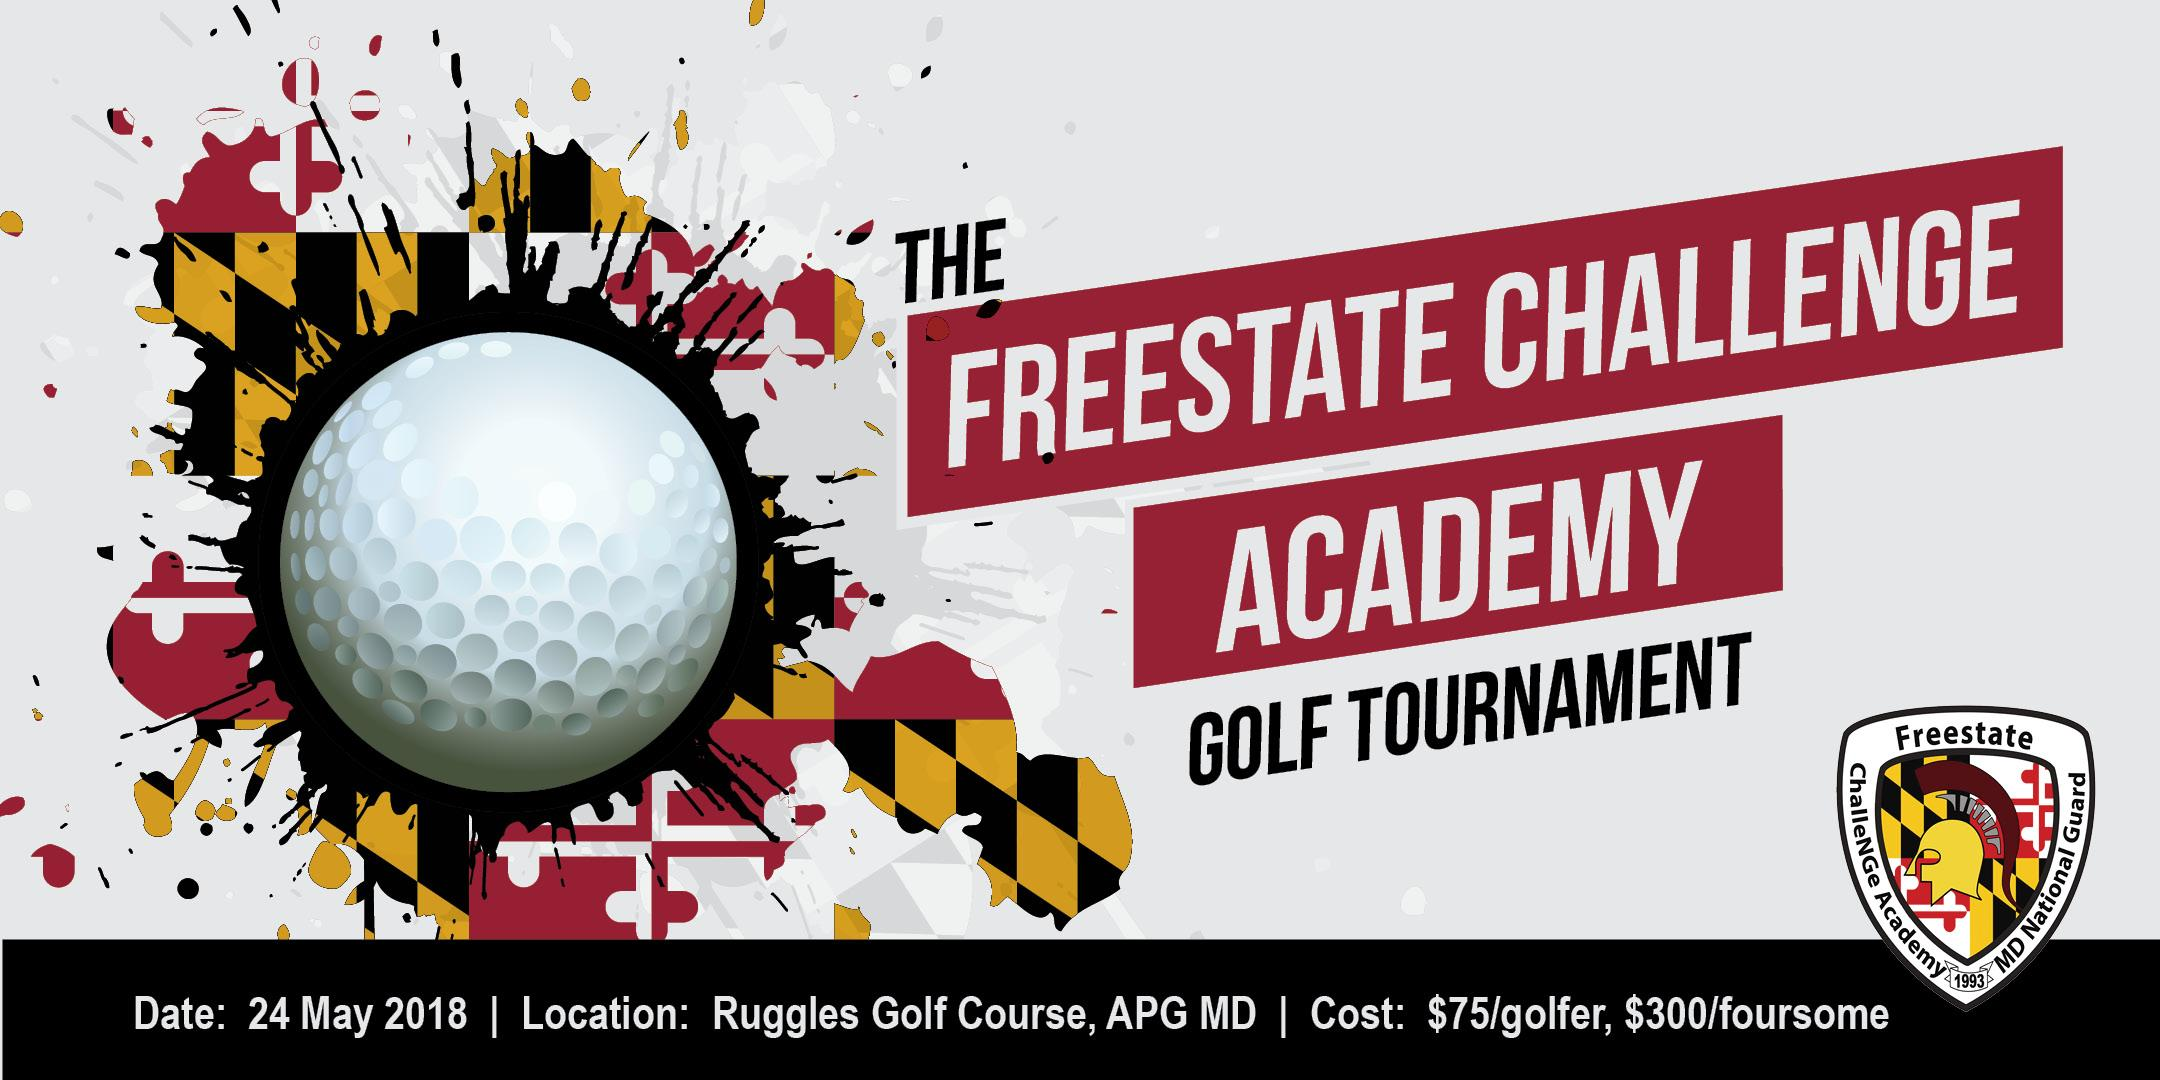 The Freestate ChalleNGe Academy Golf Tournament